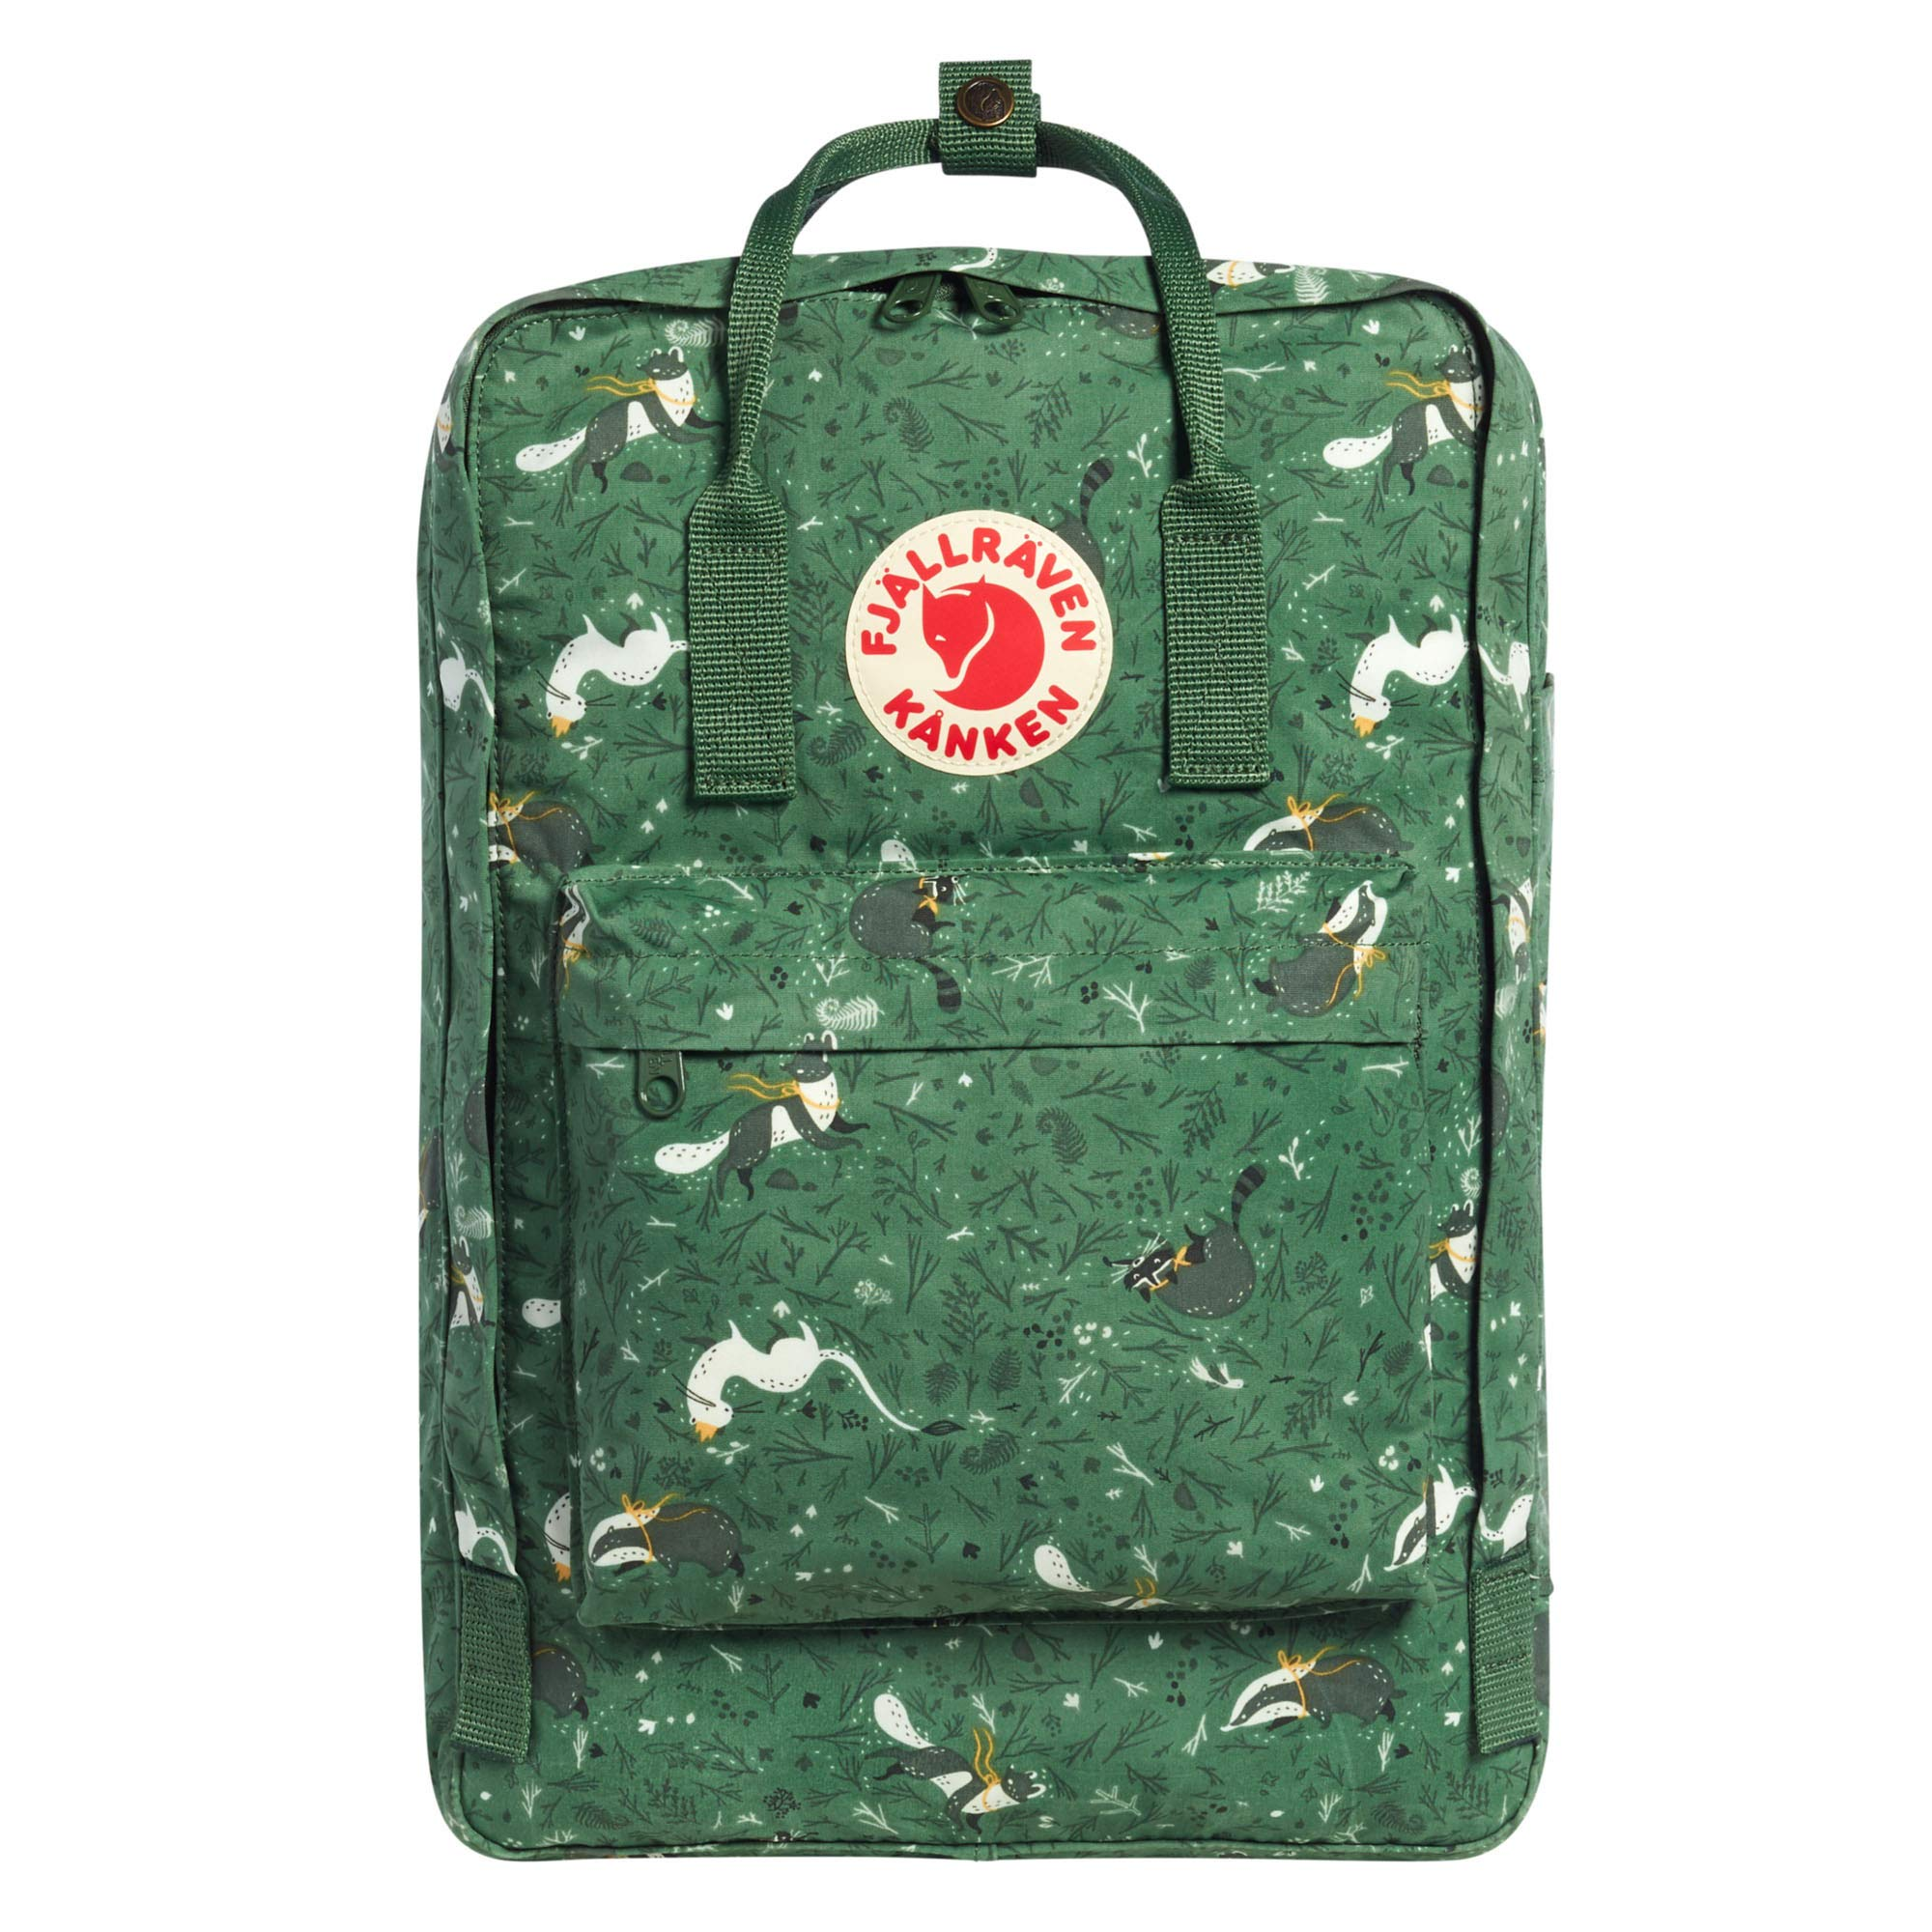 Fjallraven - Kanken Art Laptop 17'' Special Edition Backpack for Everyday, Green Fable by Fjallraven